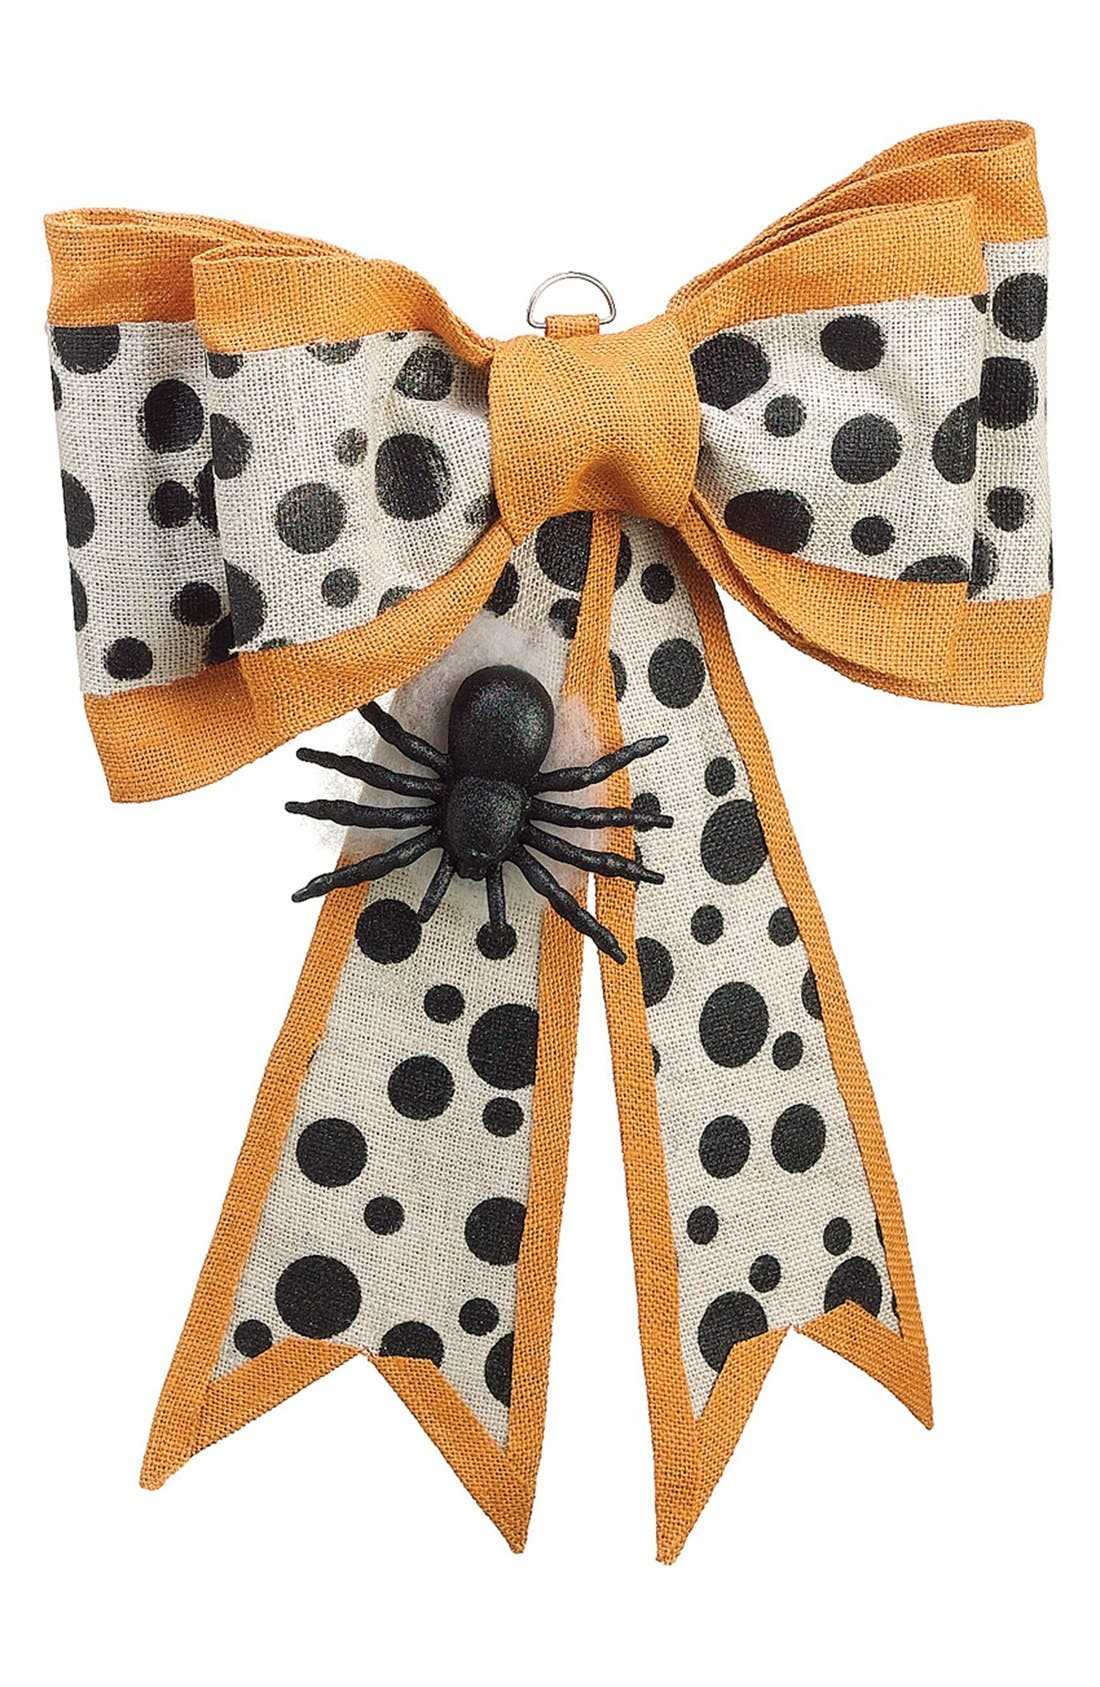 Alternate Image 1 Selected - ALLSTATE Hanging Bow Tie with Spider